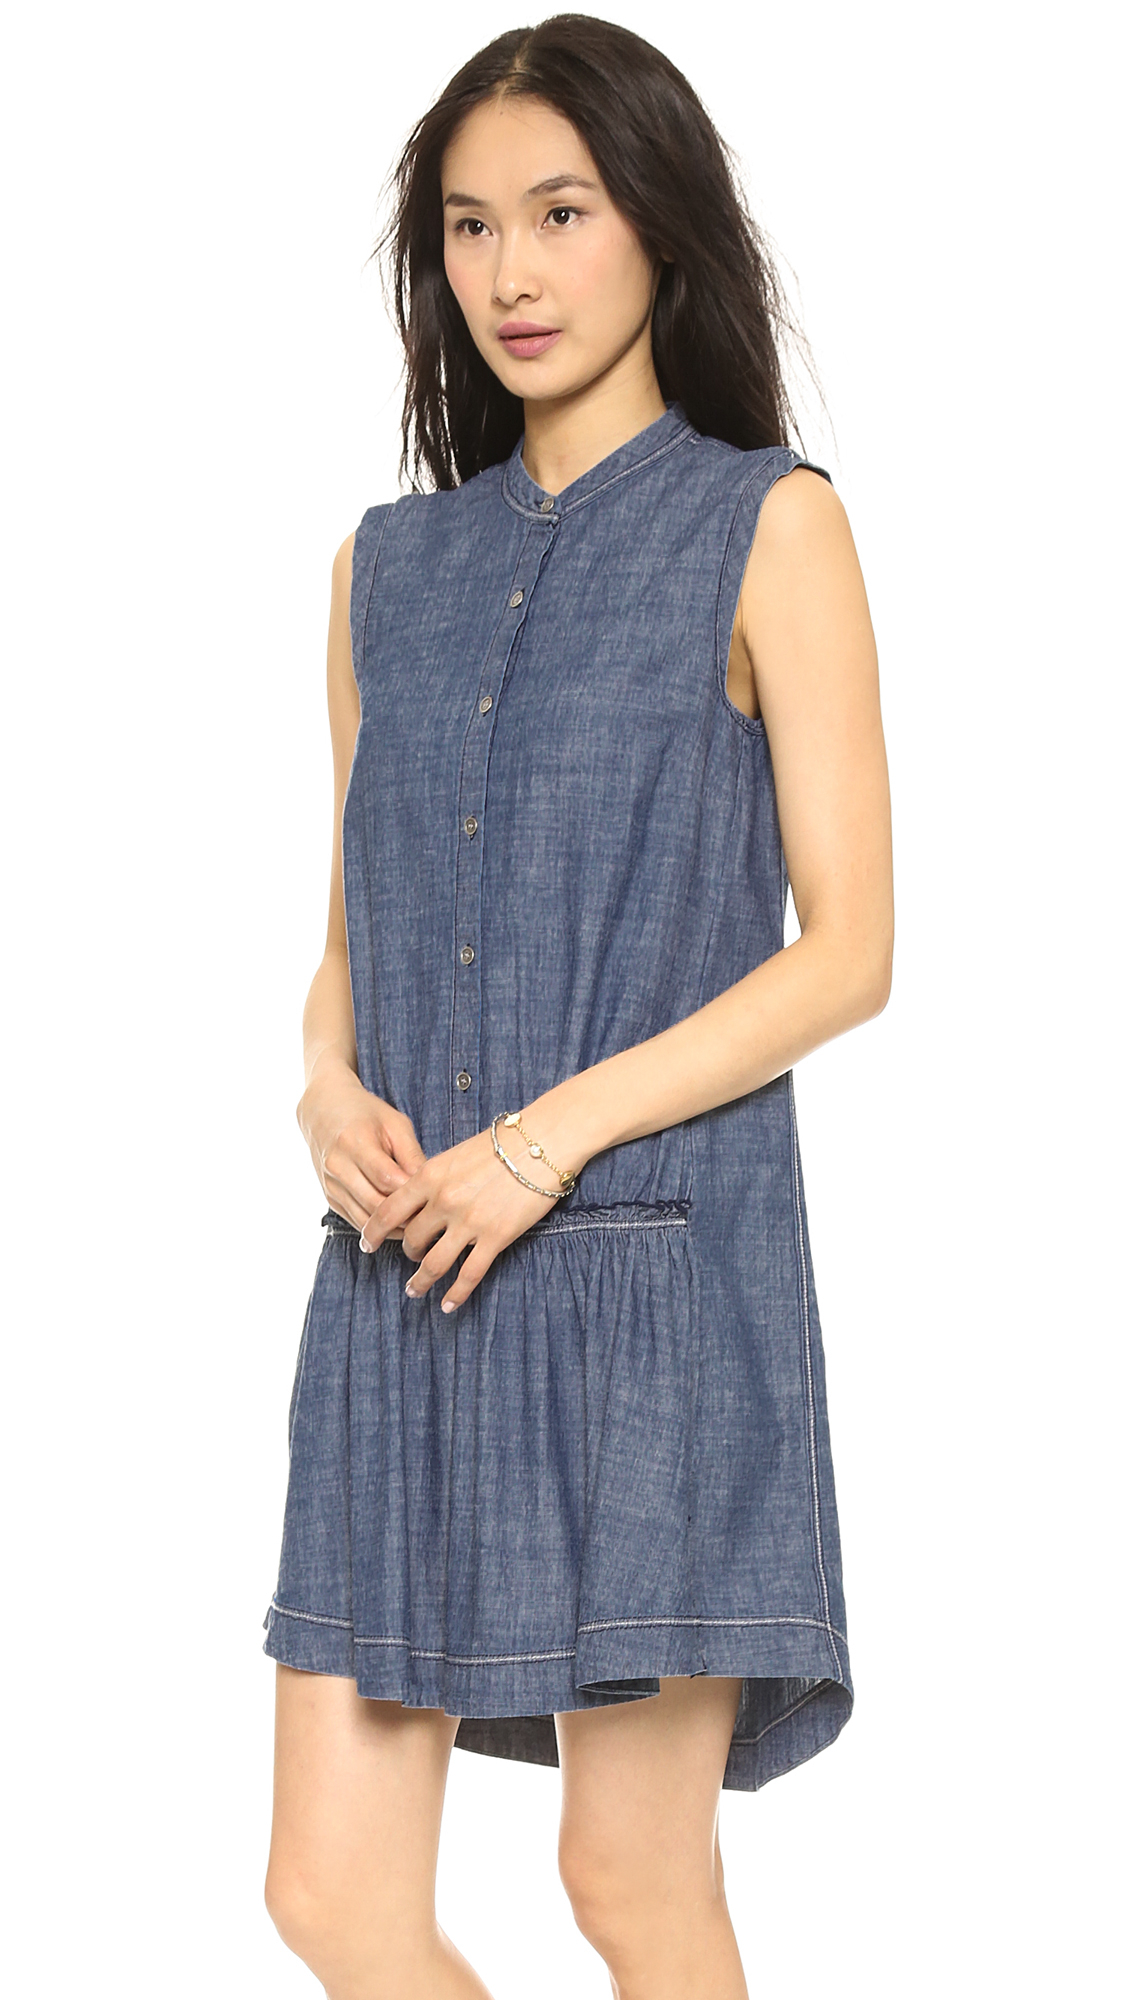 Lyst marc by marc jacobs lauren chambray dress light for Chambray dress